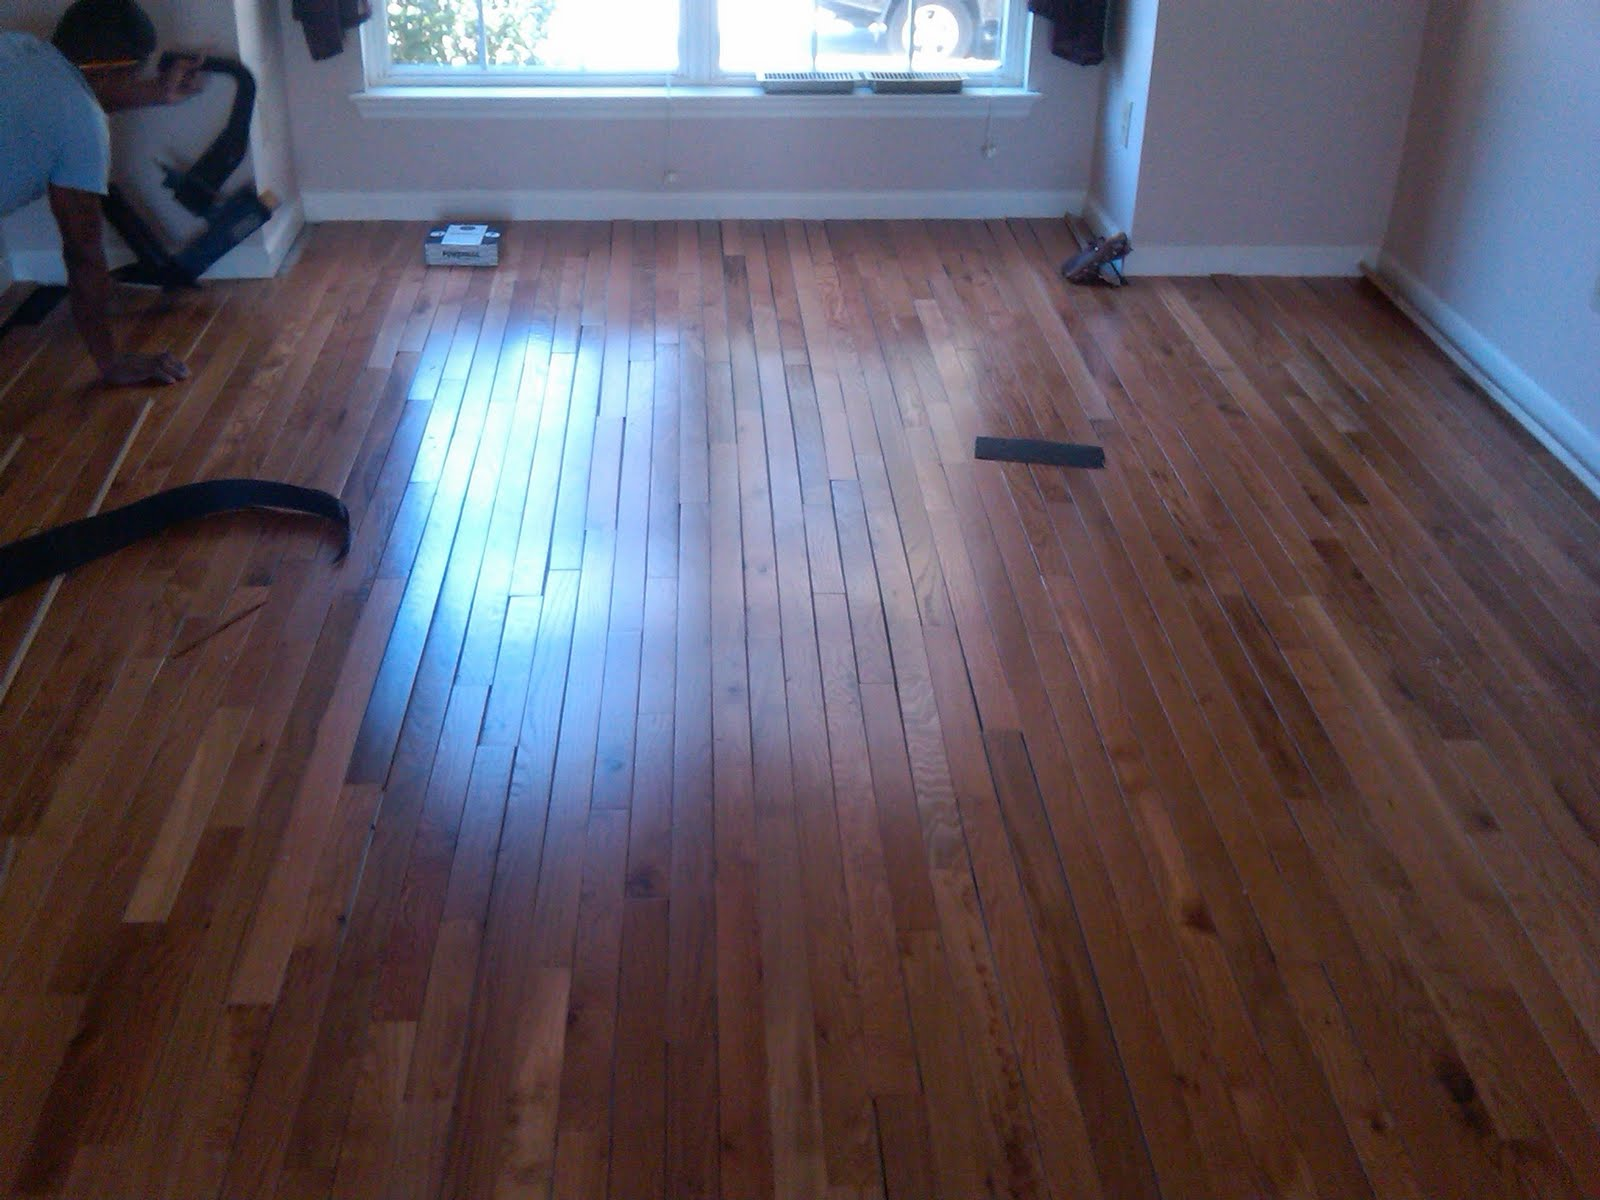 Country flooring direct jeffs shaw hardwood floor for Direct hardwood flooring